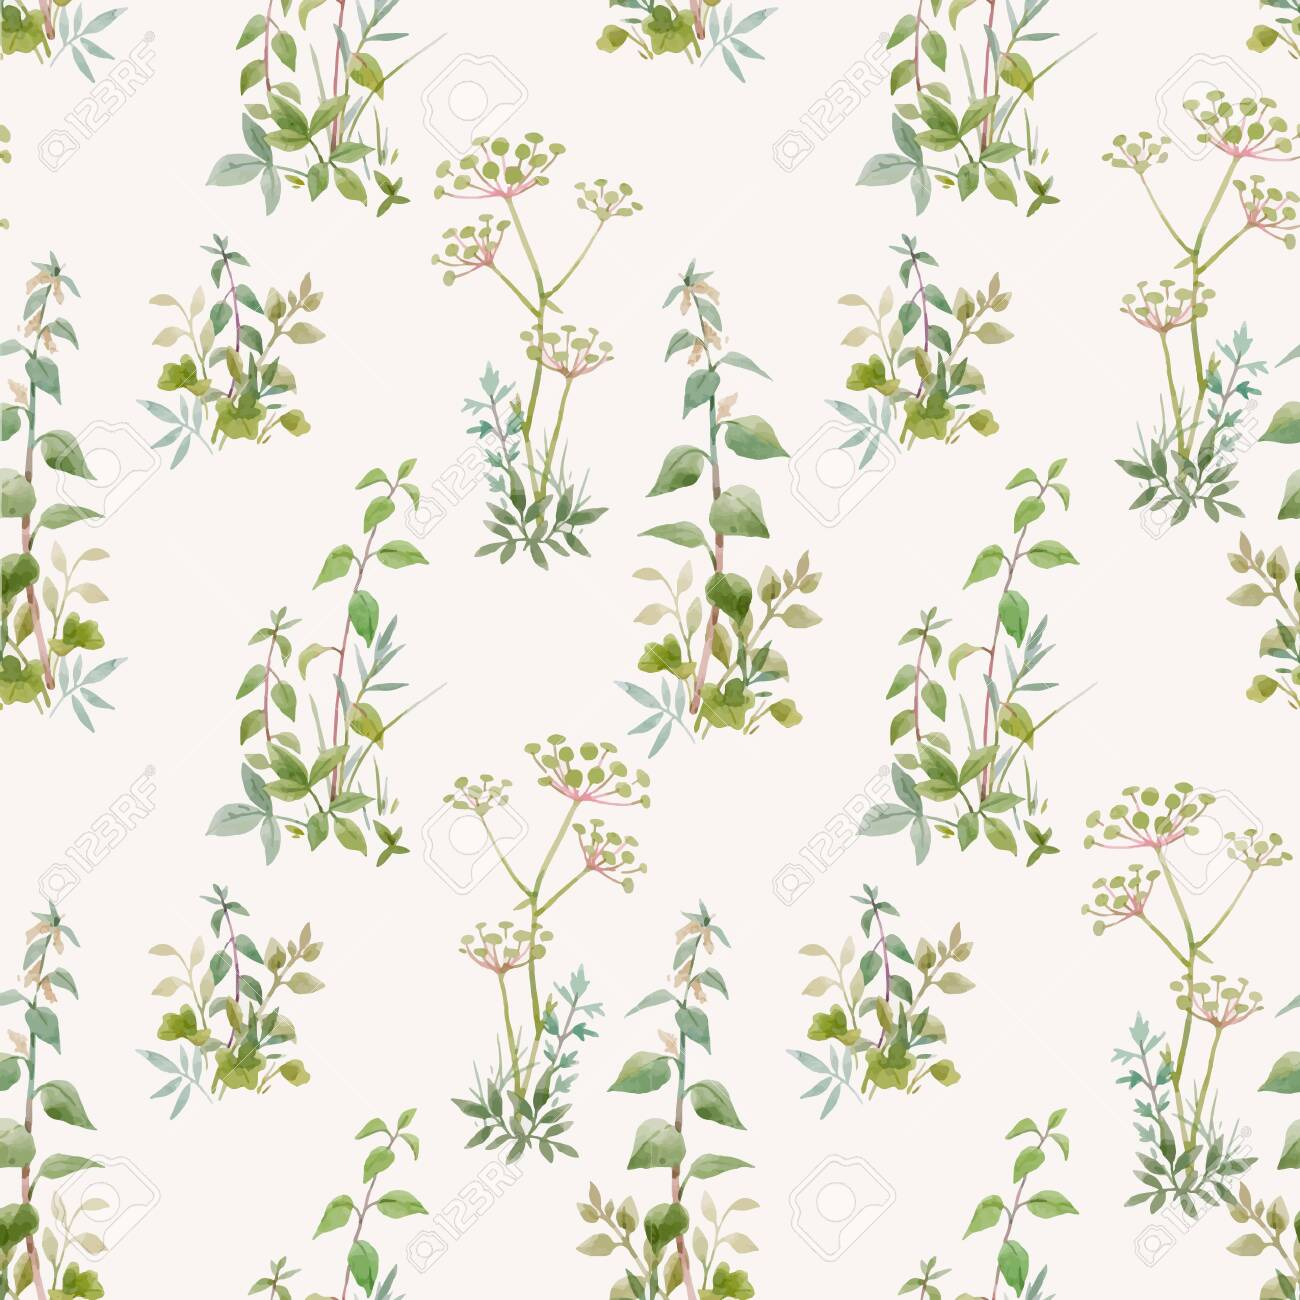 Beautiful vector seamless floral pattern with watercolor forest plants. Stock illustration. - 153339502